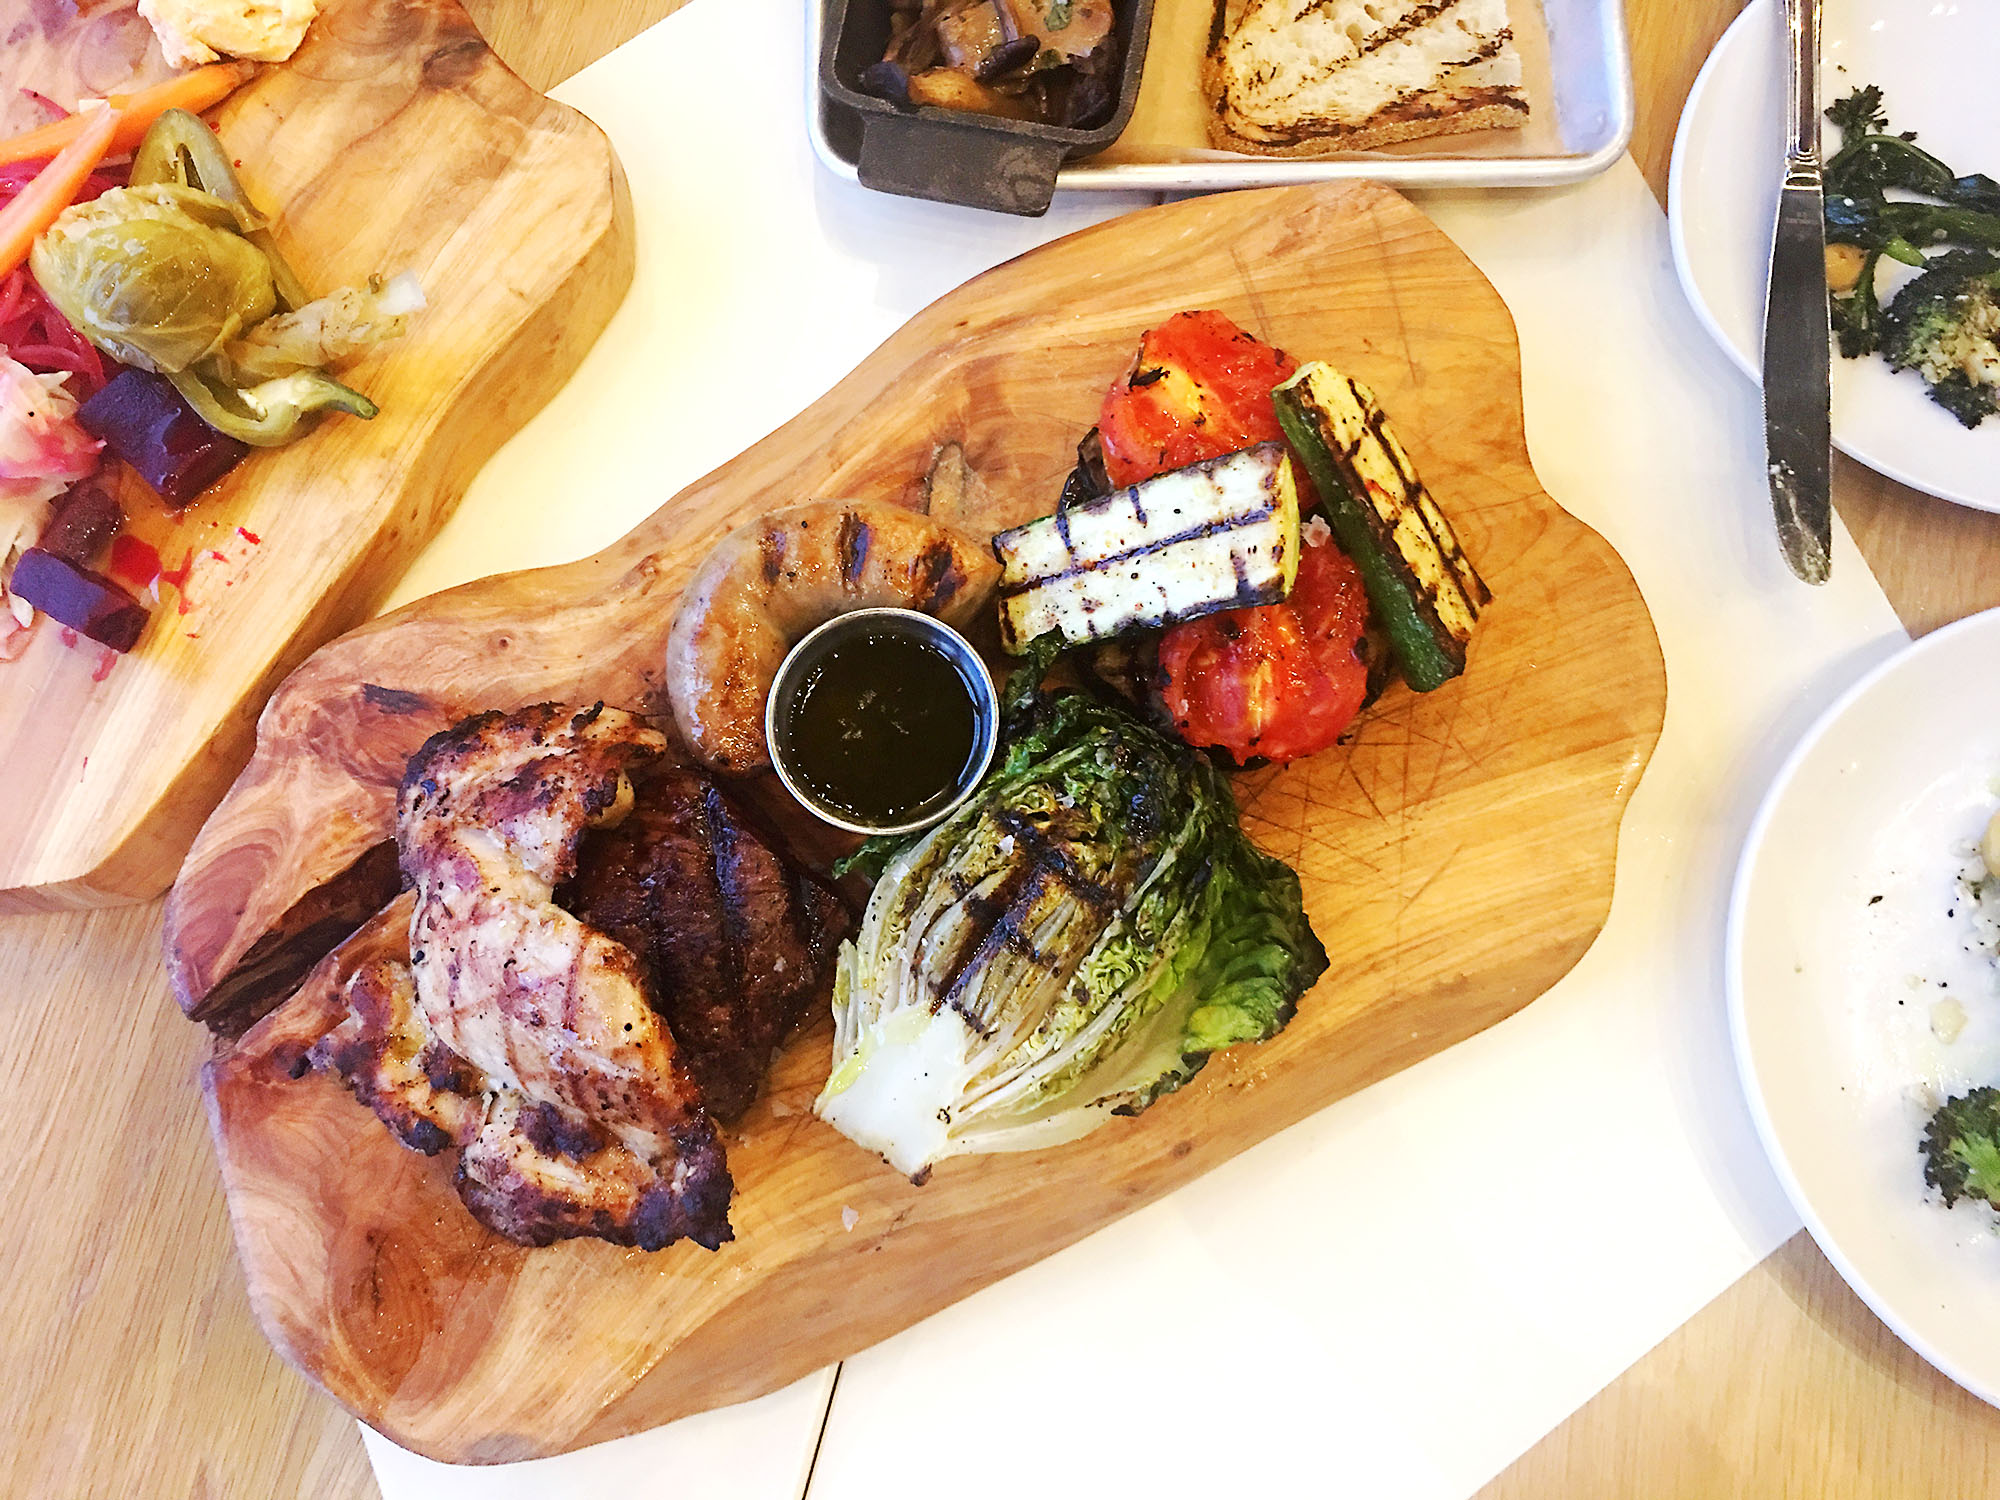 Mixed Grill, $32